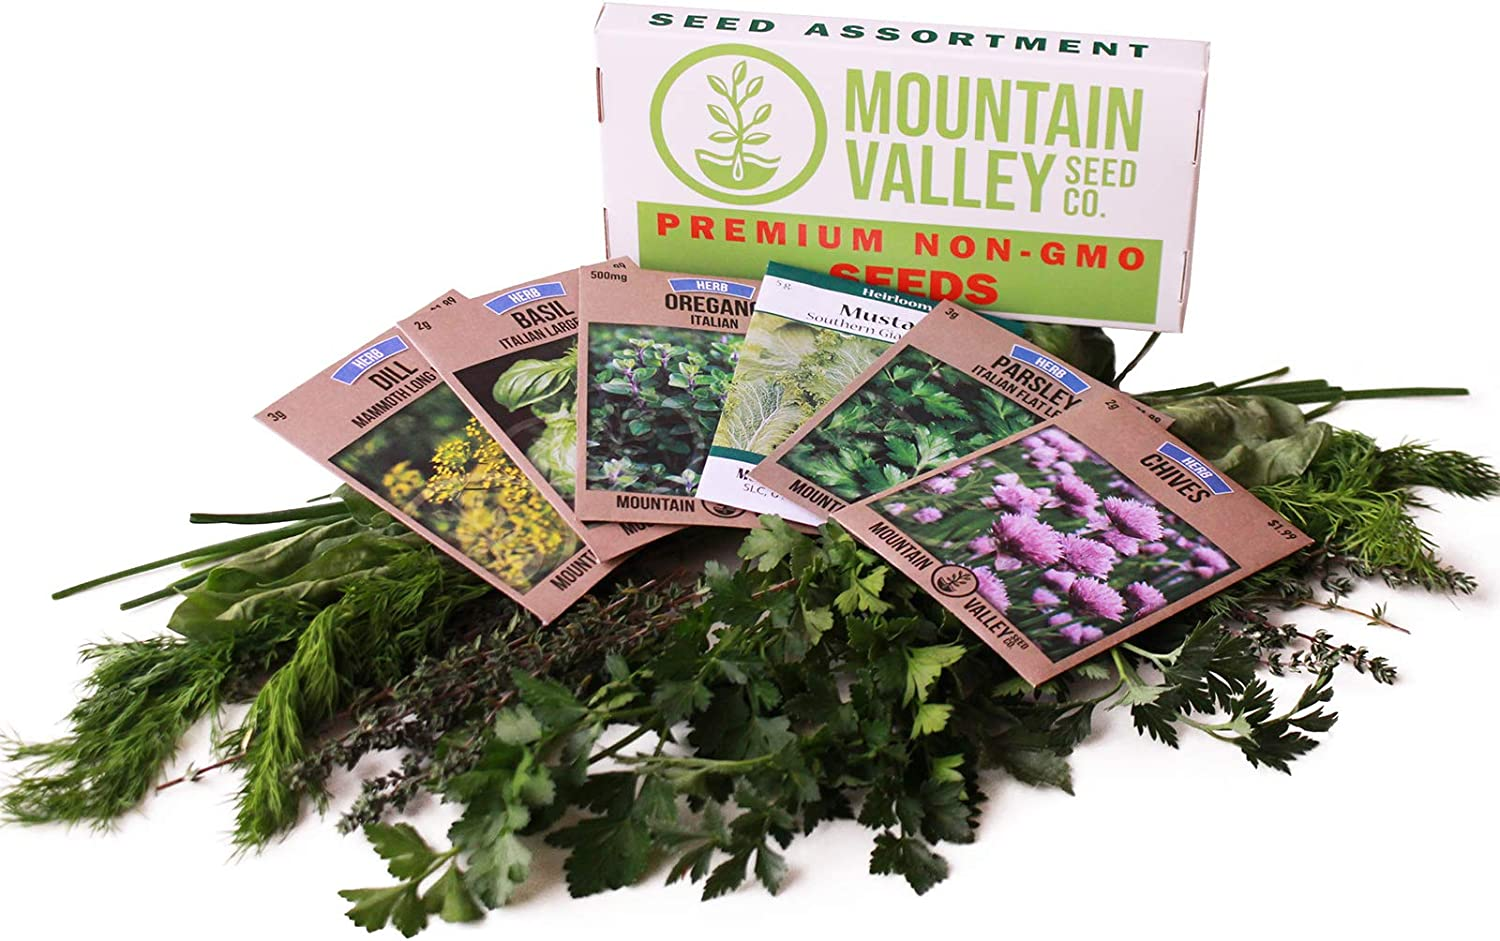 Culinary Herb Seeds Garden Collection   Basic Assortment   6 Non-GMO Seed Packets: Basil, Dill, Oregano, Parsley, Chives & Mustard   Grow Cooking Herbs & Spices